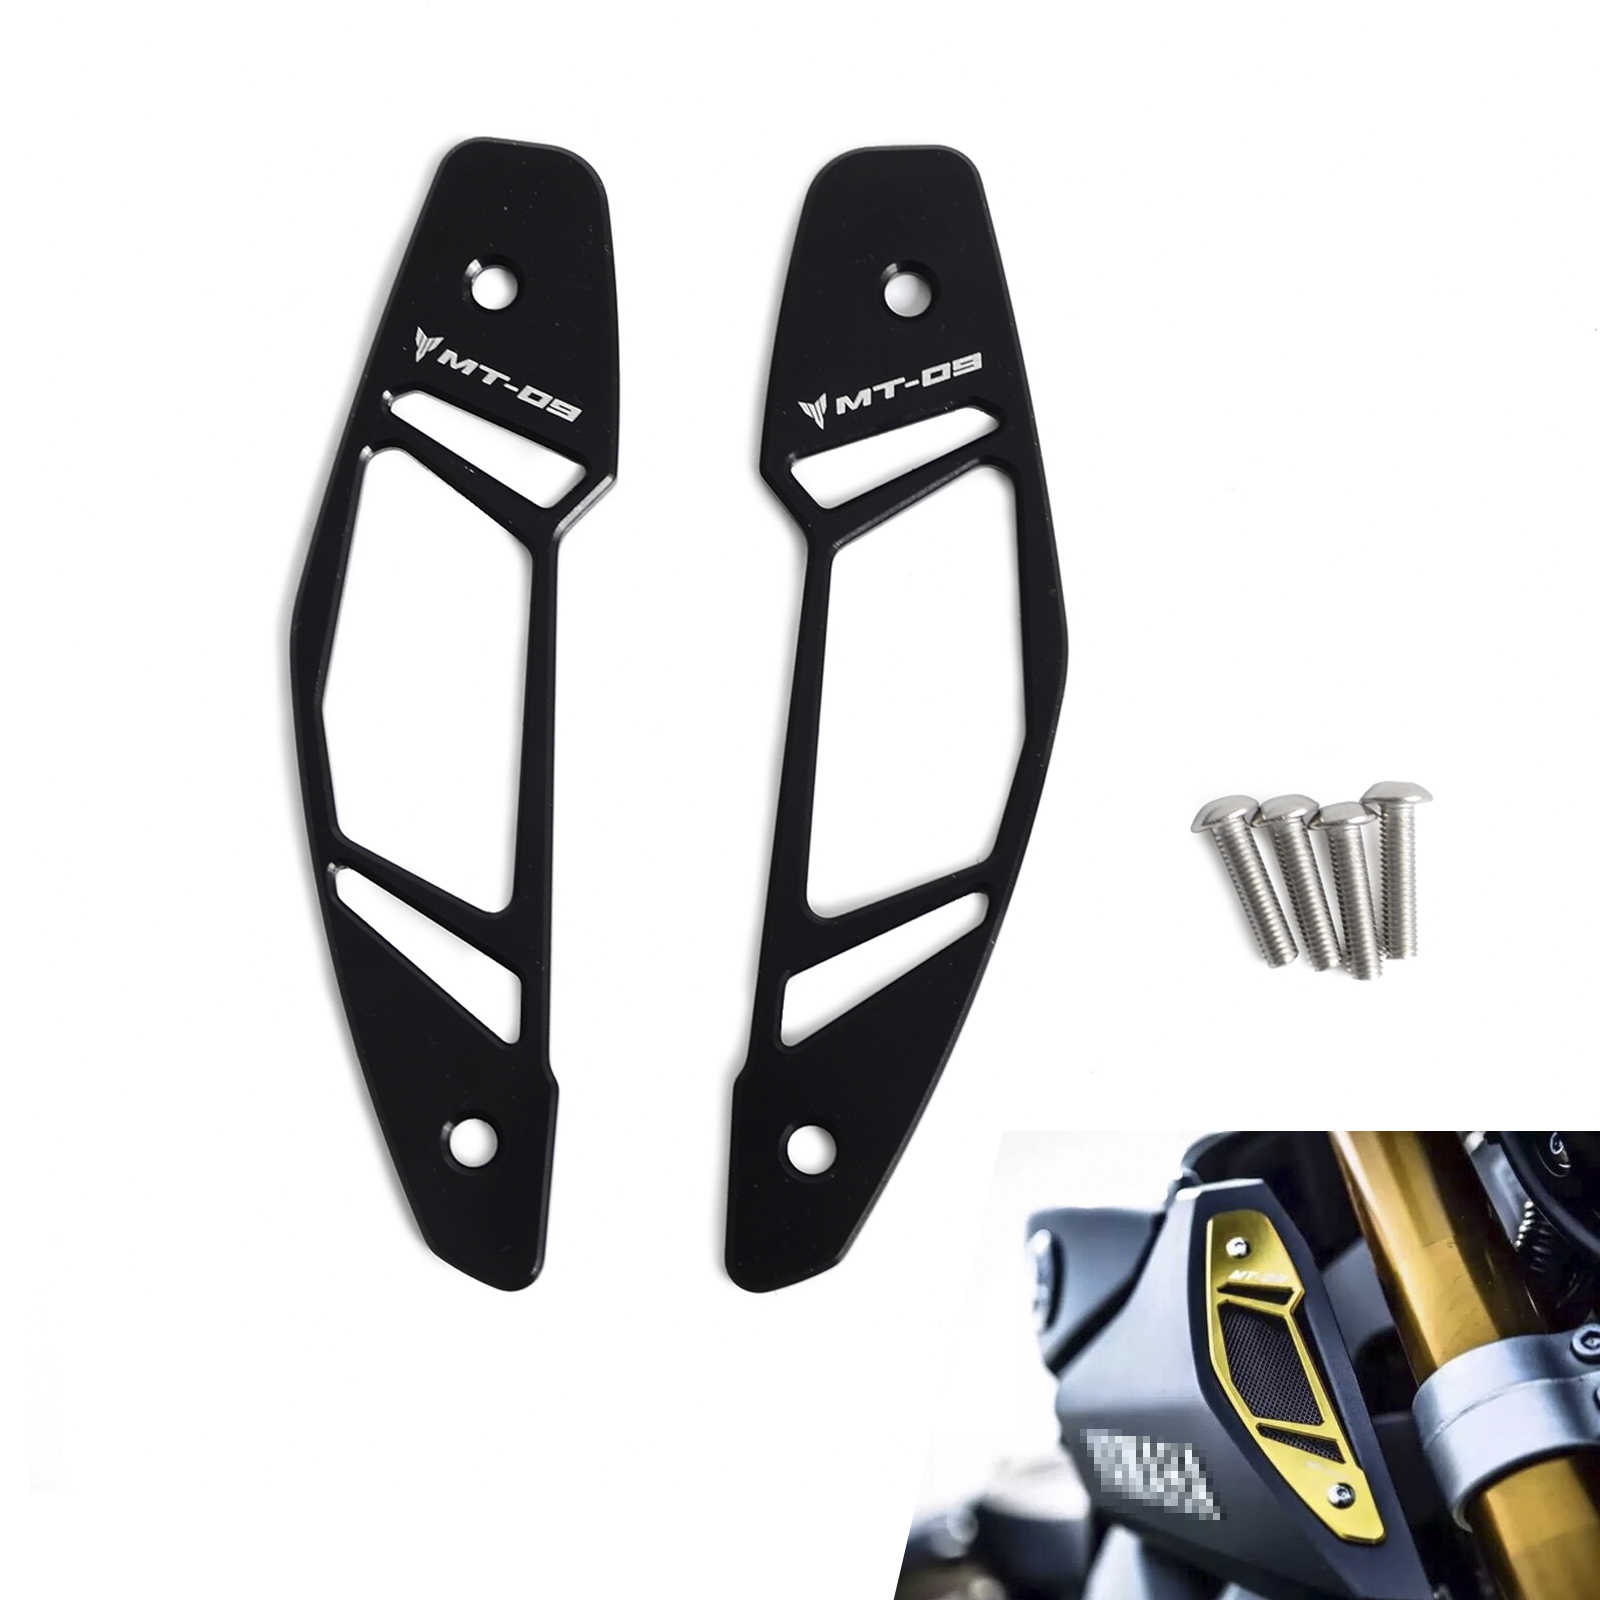 Motorcycle Air Intake Inlet Guard Cover Protector for YAMAHA MT09 FZ09 2013-2016